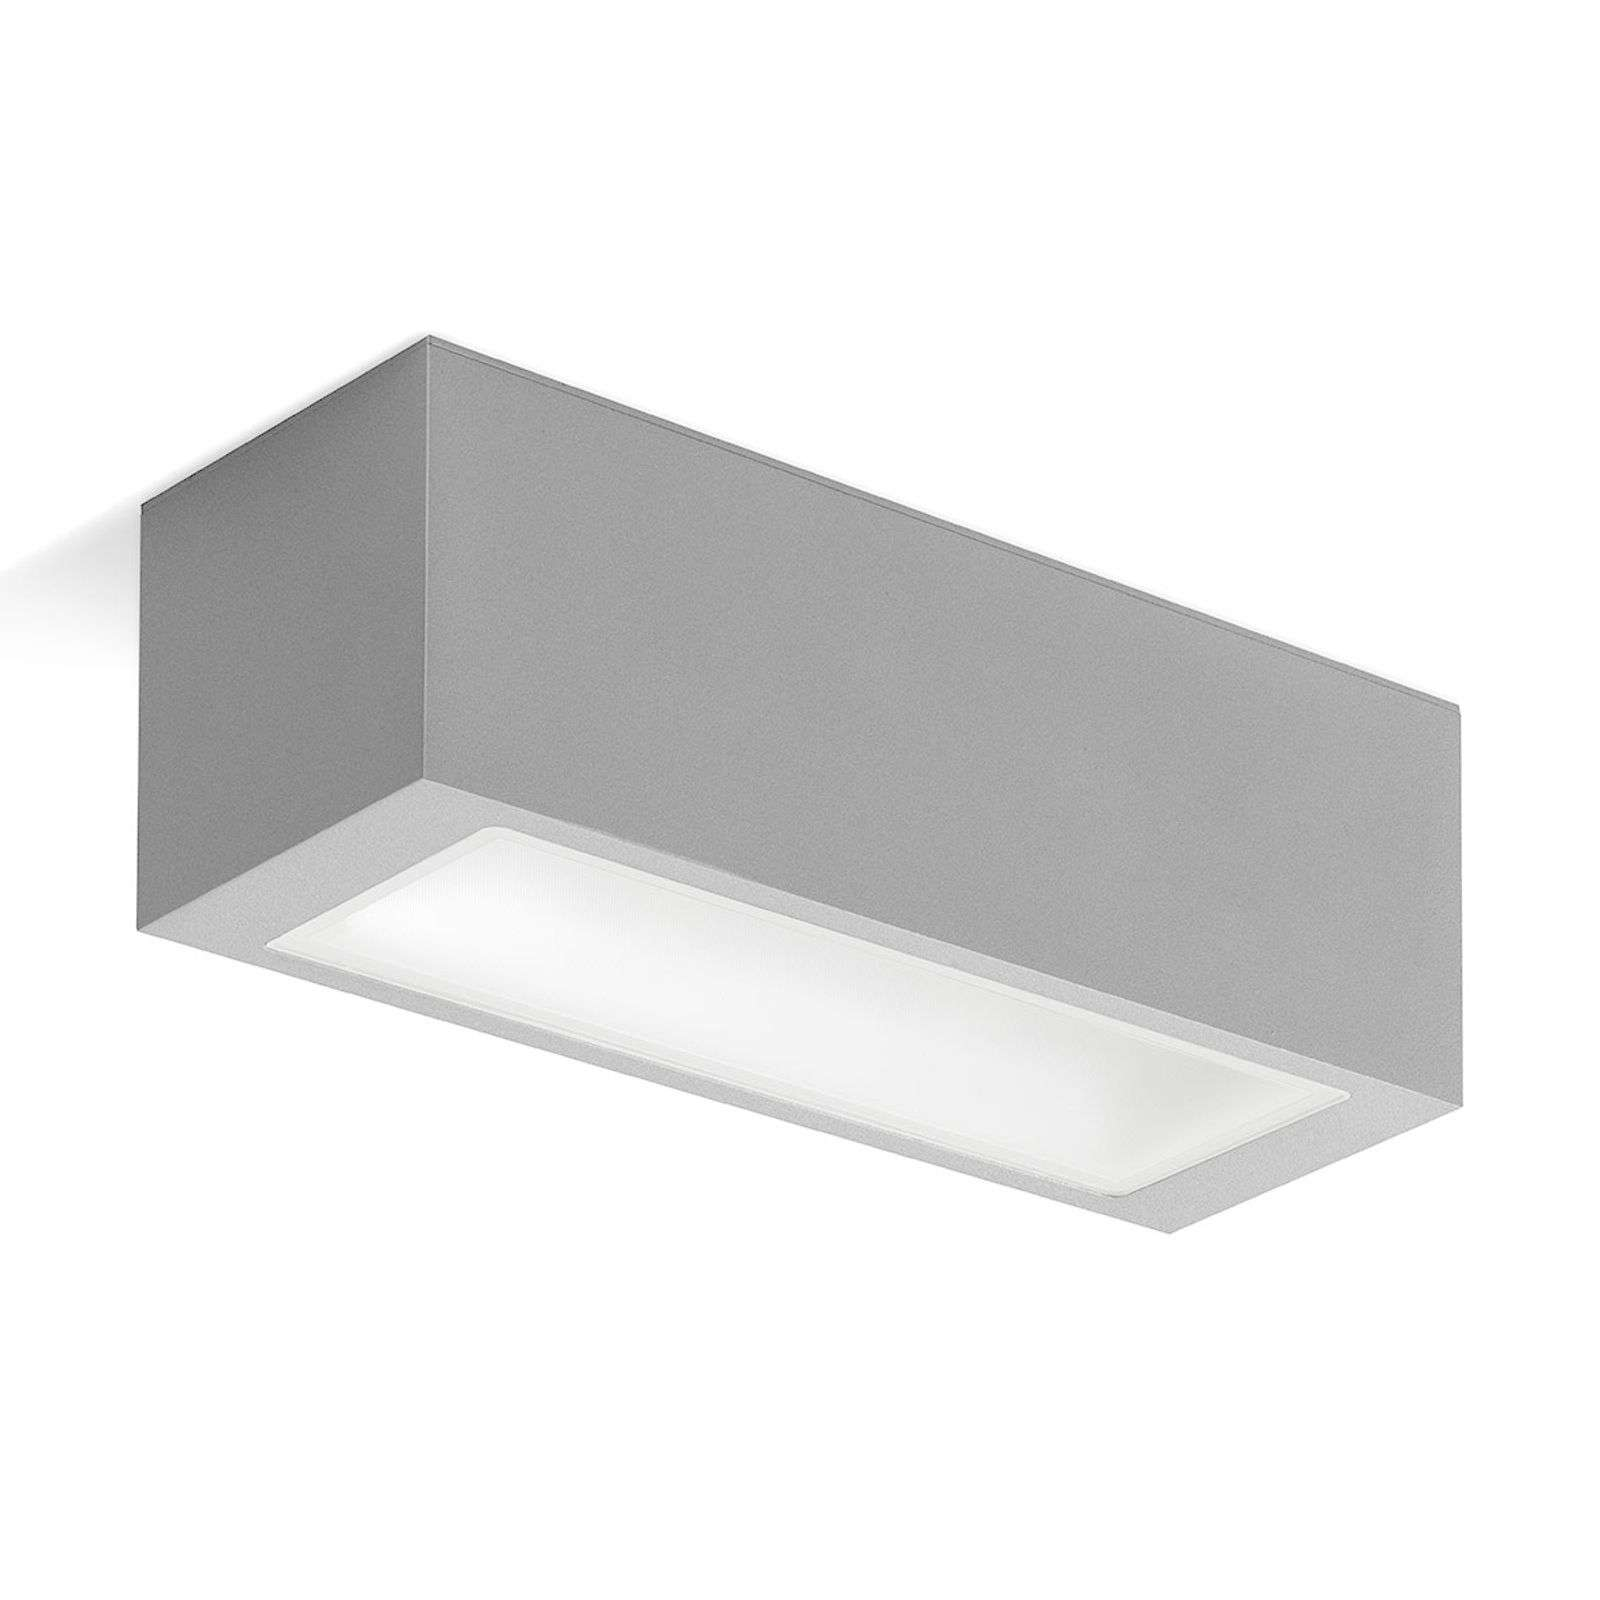 Applique LED 303553 grise 4 000 K